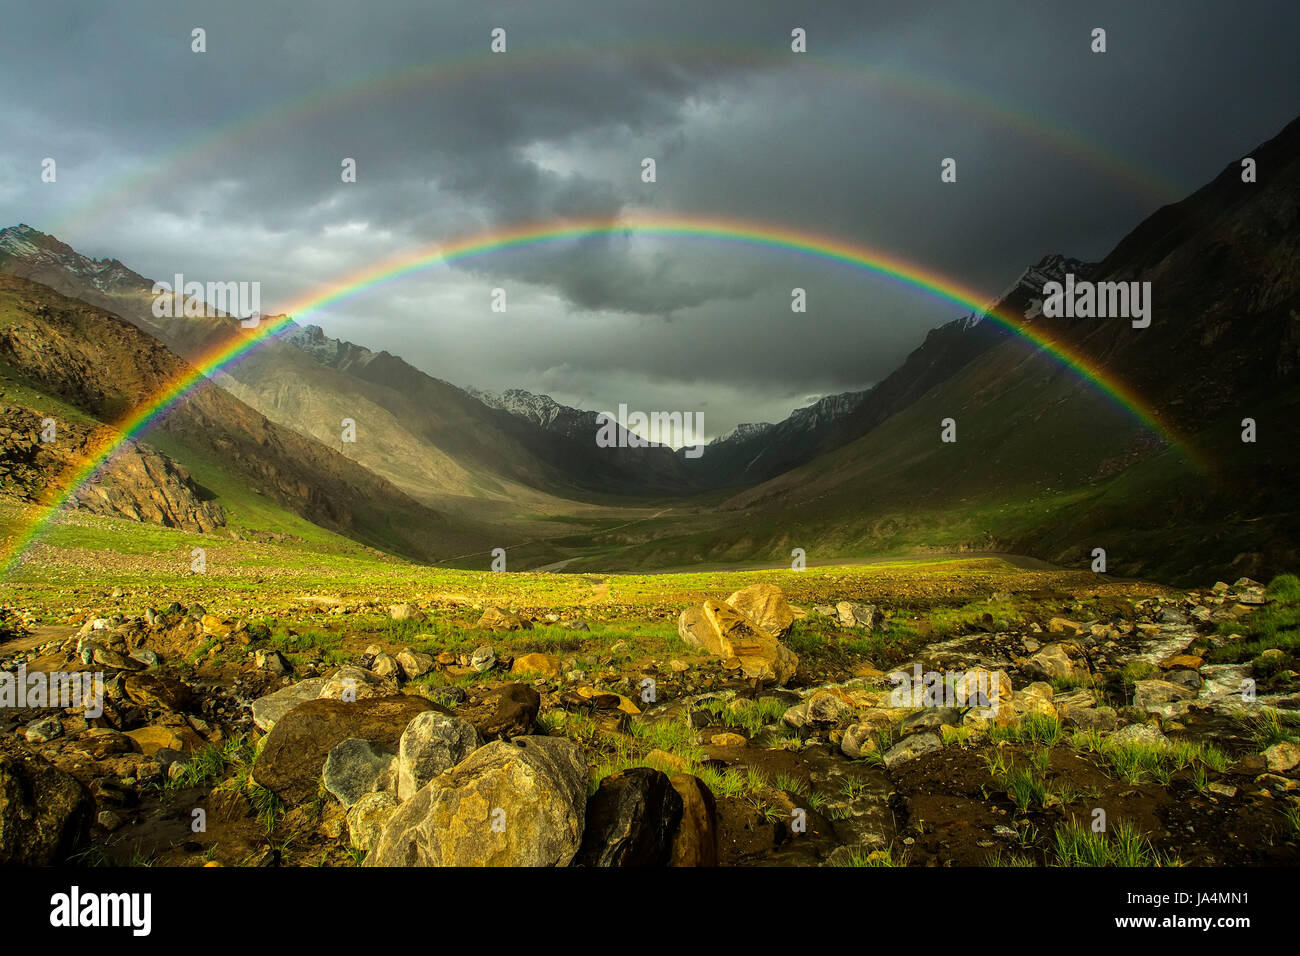 A double bright rainbow after the rain to the high mountains of the valley: above the green fields is a beautiful, Stock Photo